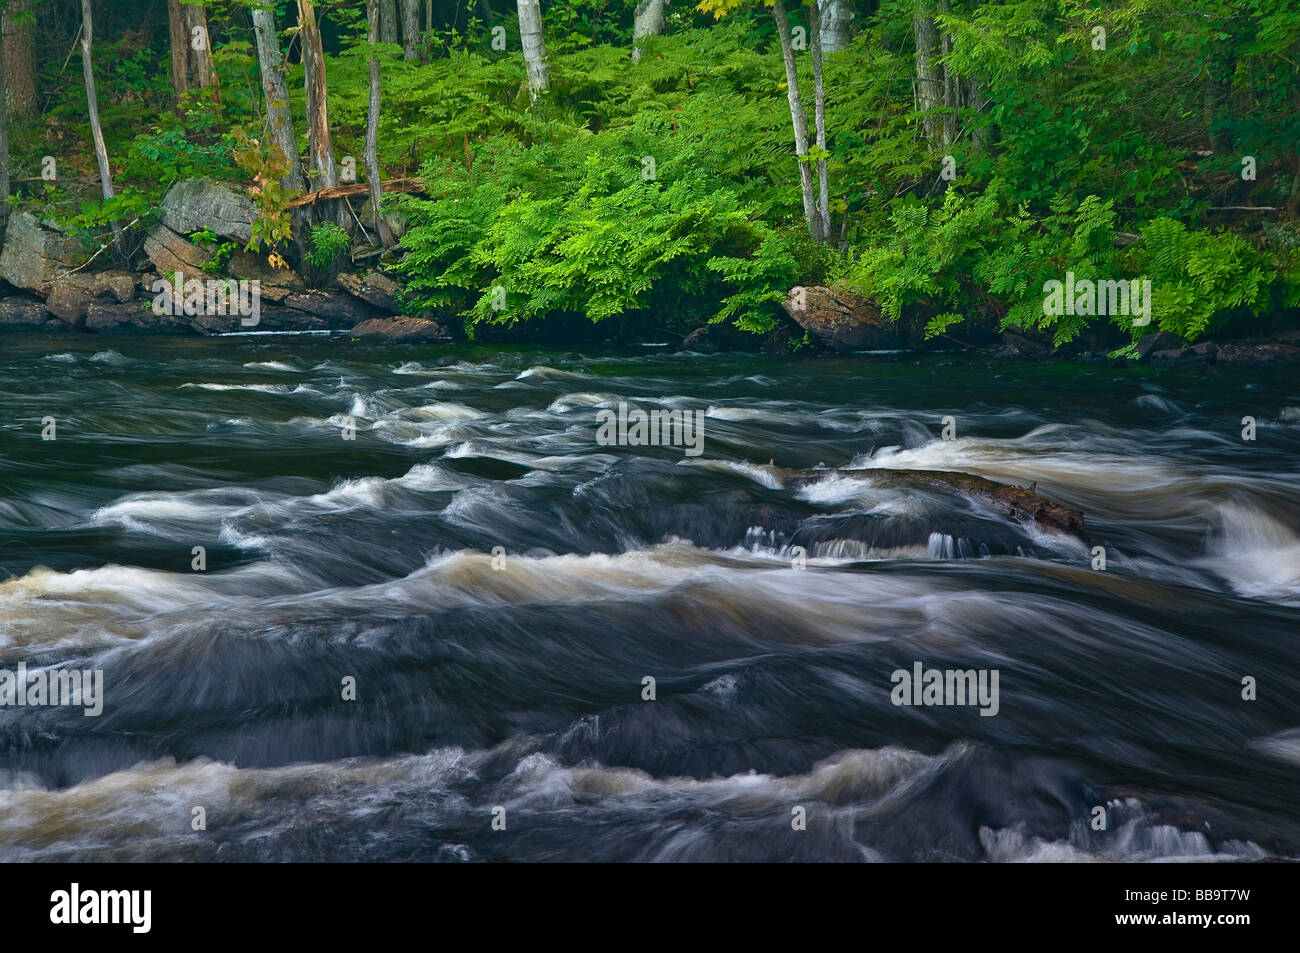 Green Ferns on banks of Oxtongue Rapids Algonquin Park Ontario Canada - Stock Image